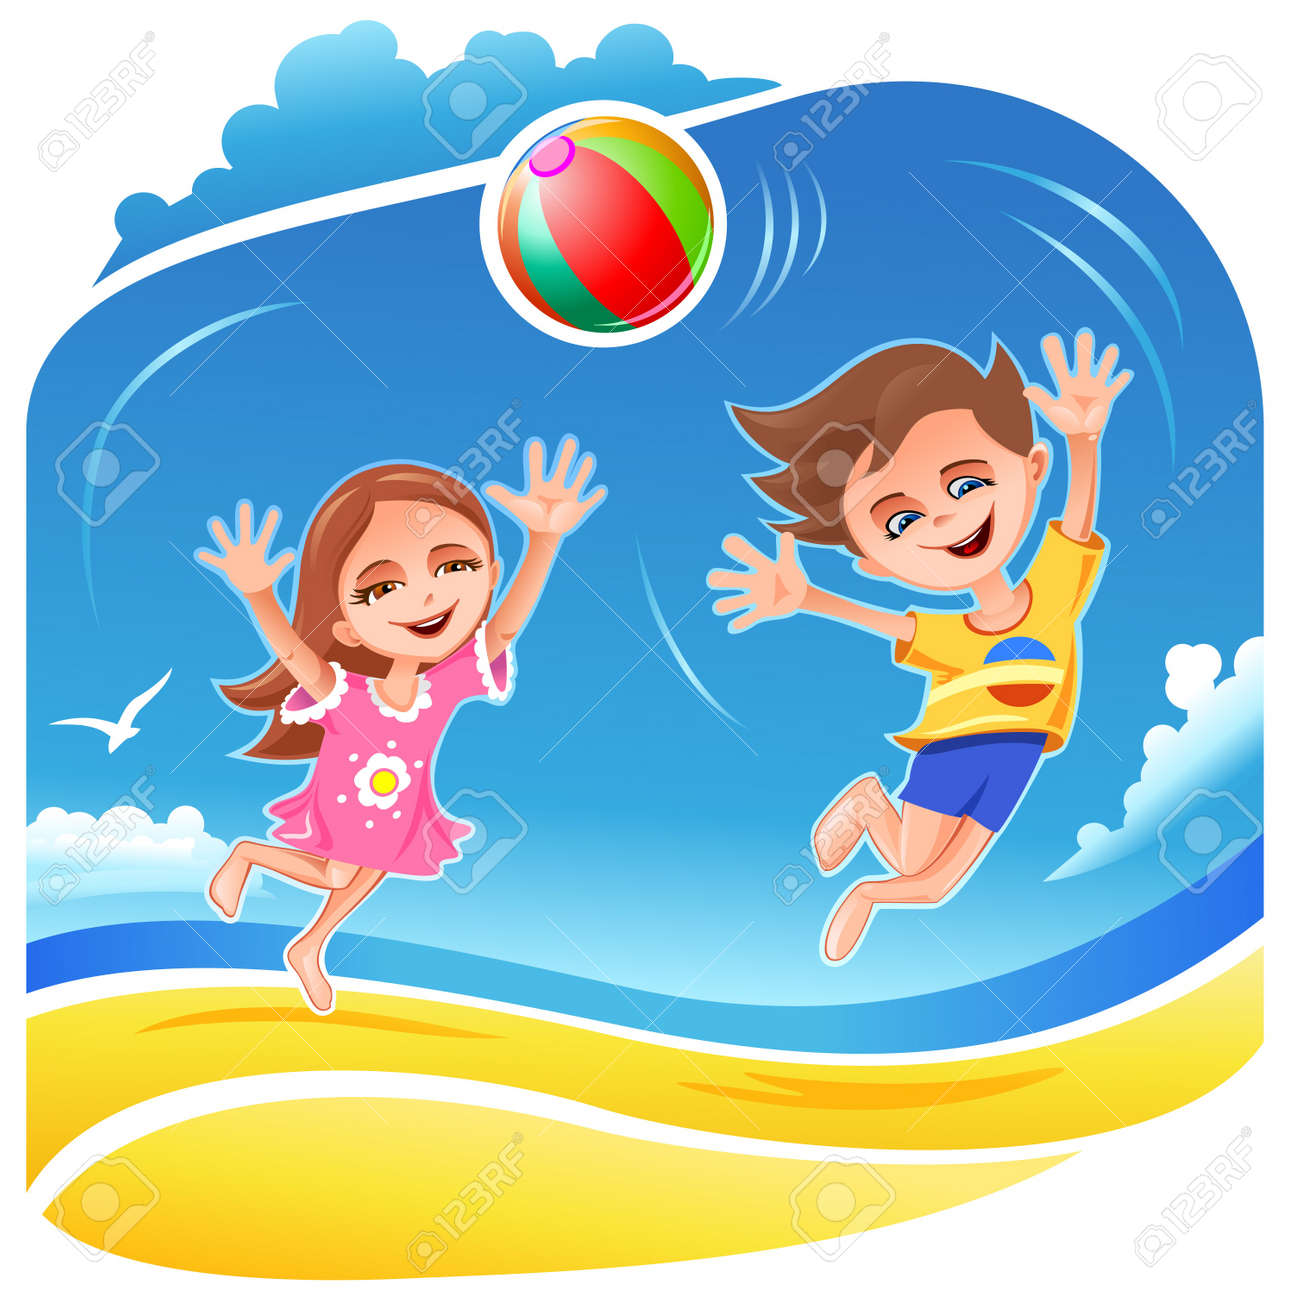 Boy and girl playing with ball on the beach Stock Vector - 11238873